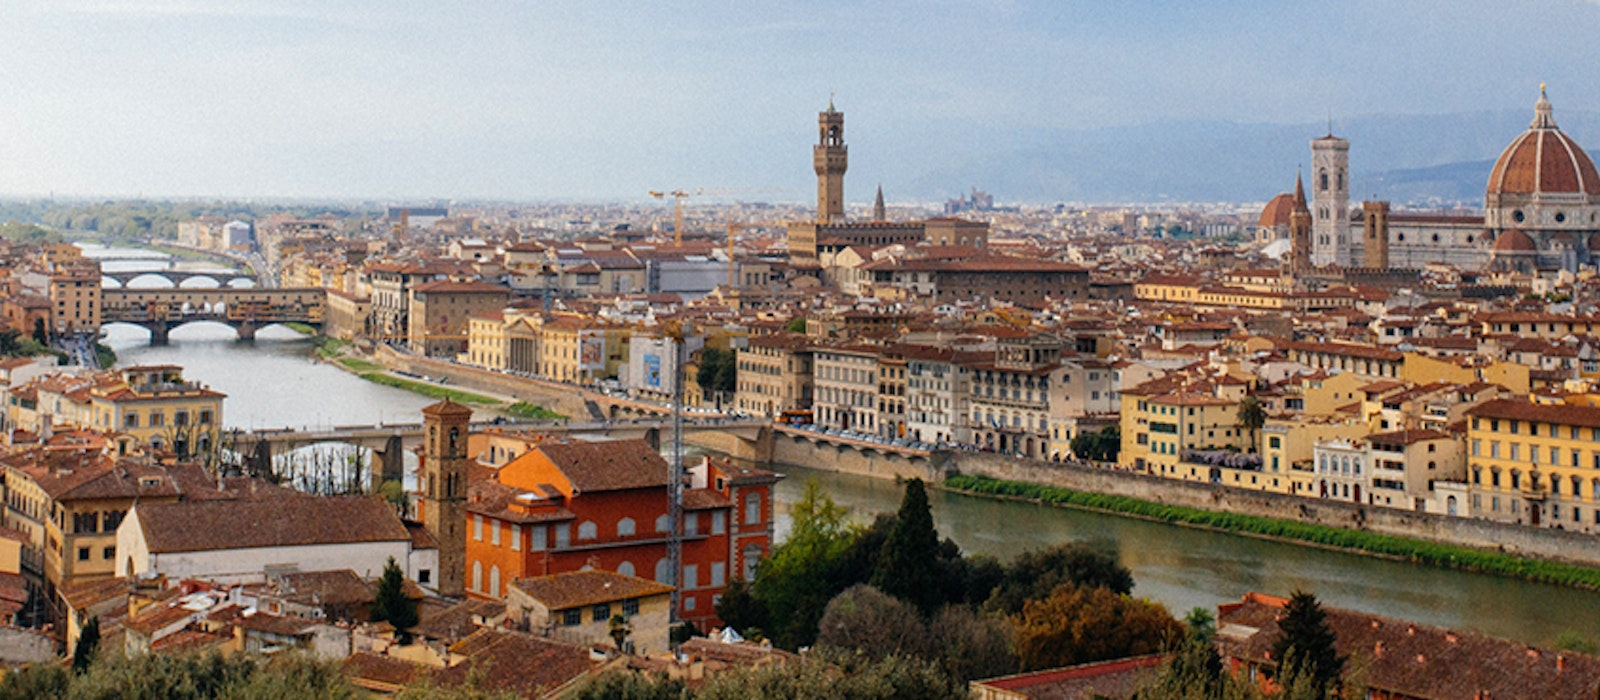 Master Florence like a de Medici with our tips on the best places to stay, eat, and best things to do.